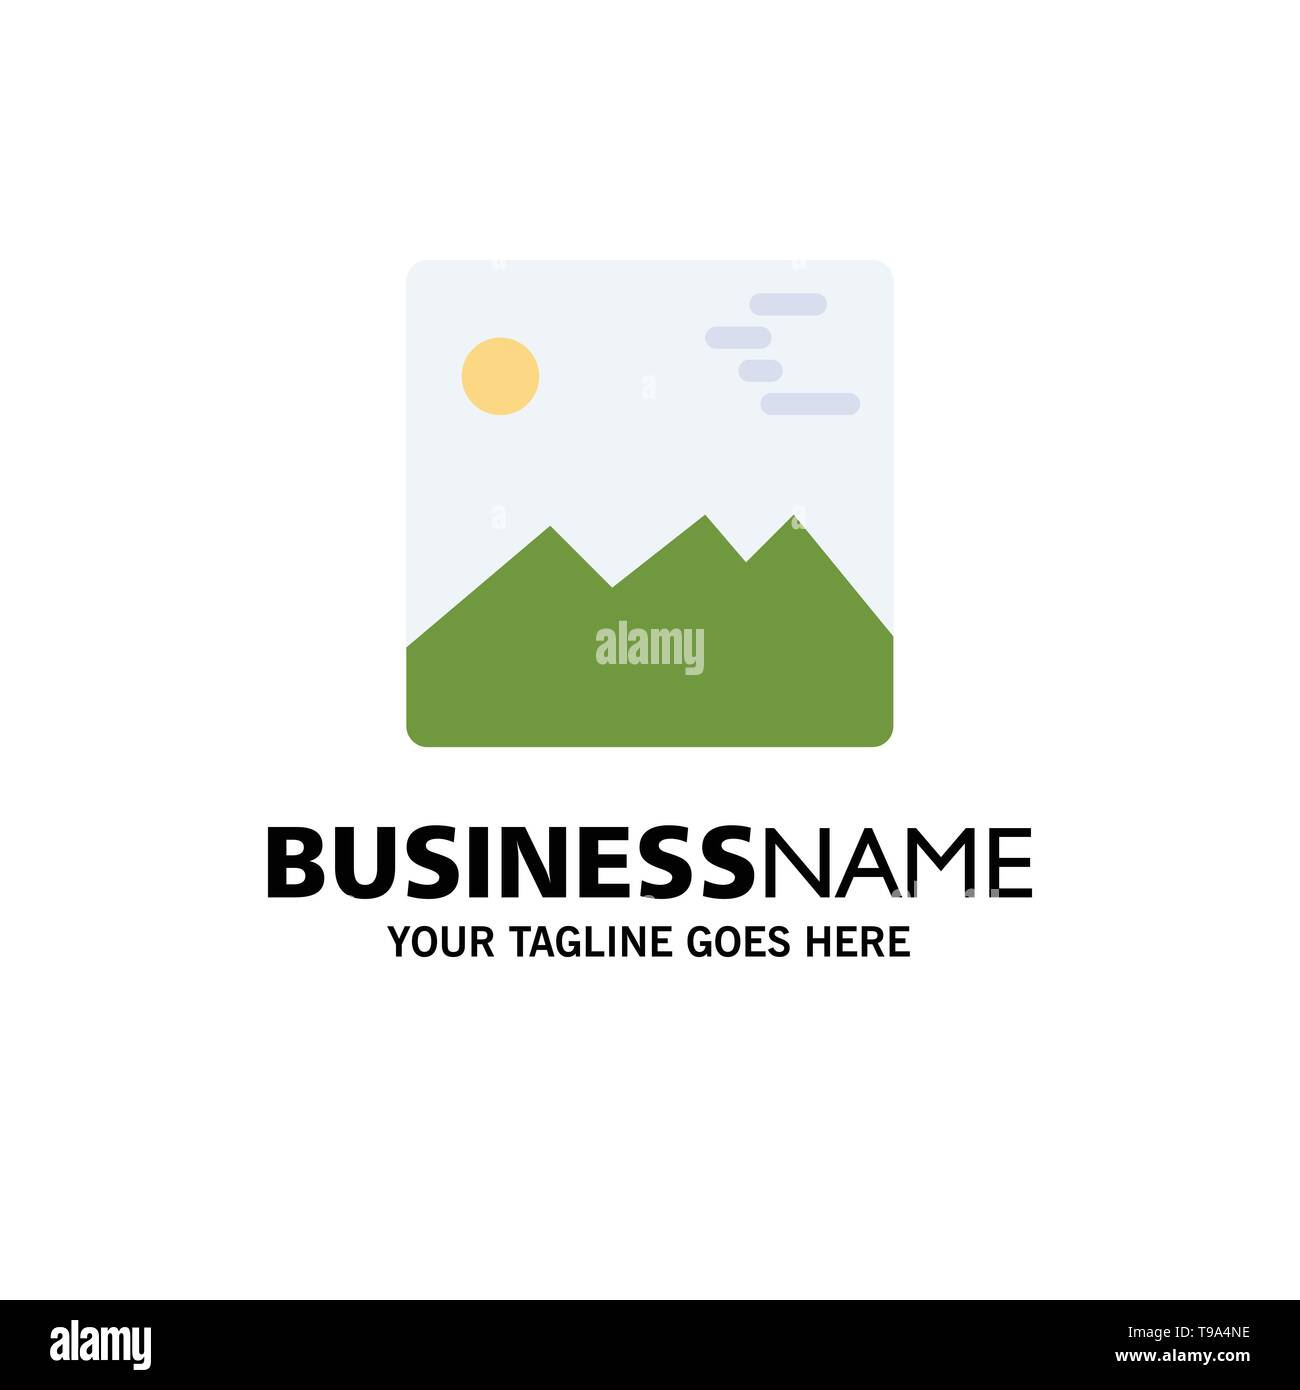 Gallery, Image, Picture, Canada Business Logo Template. Flat Color - Stock Image